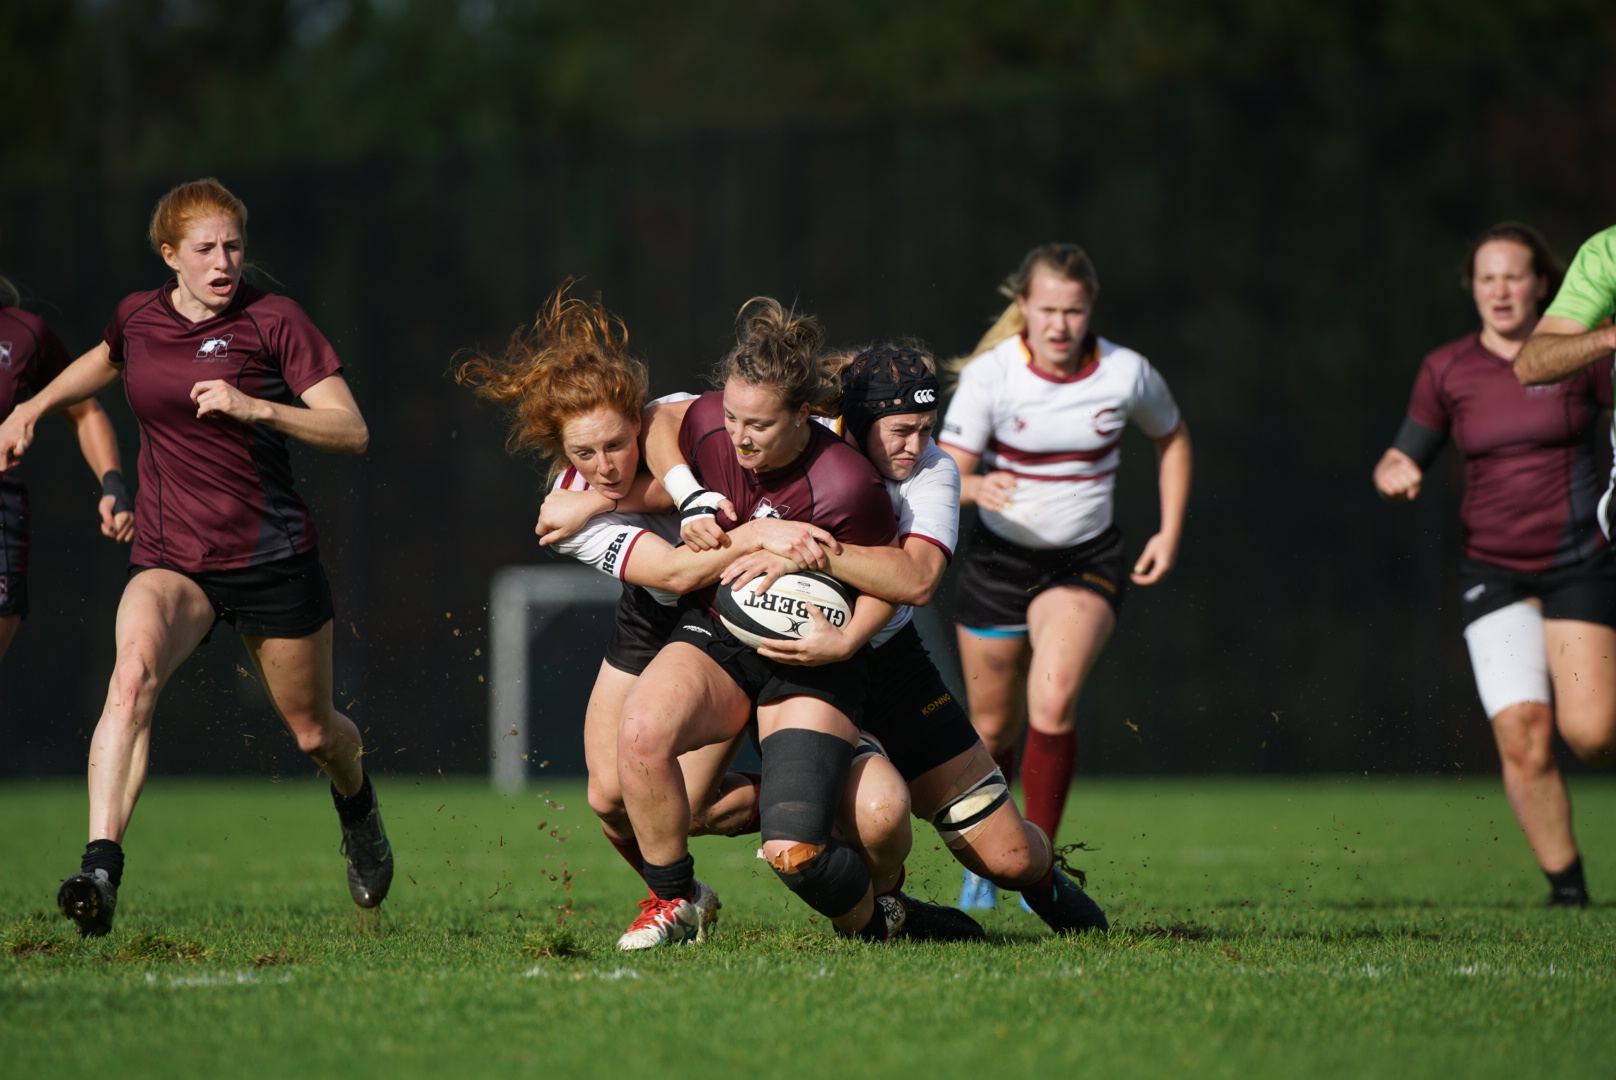 2016 women's rugby championship 5TH PLACE: Stingers earn fifth place with character victory over Marauders